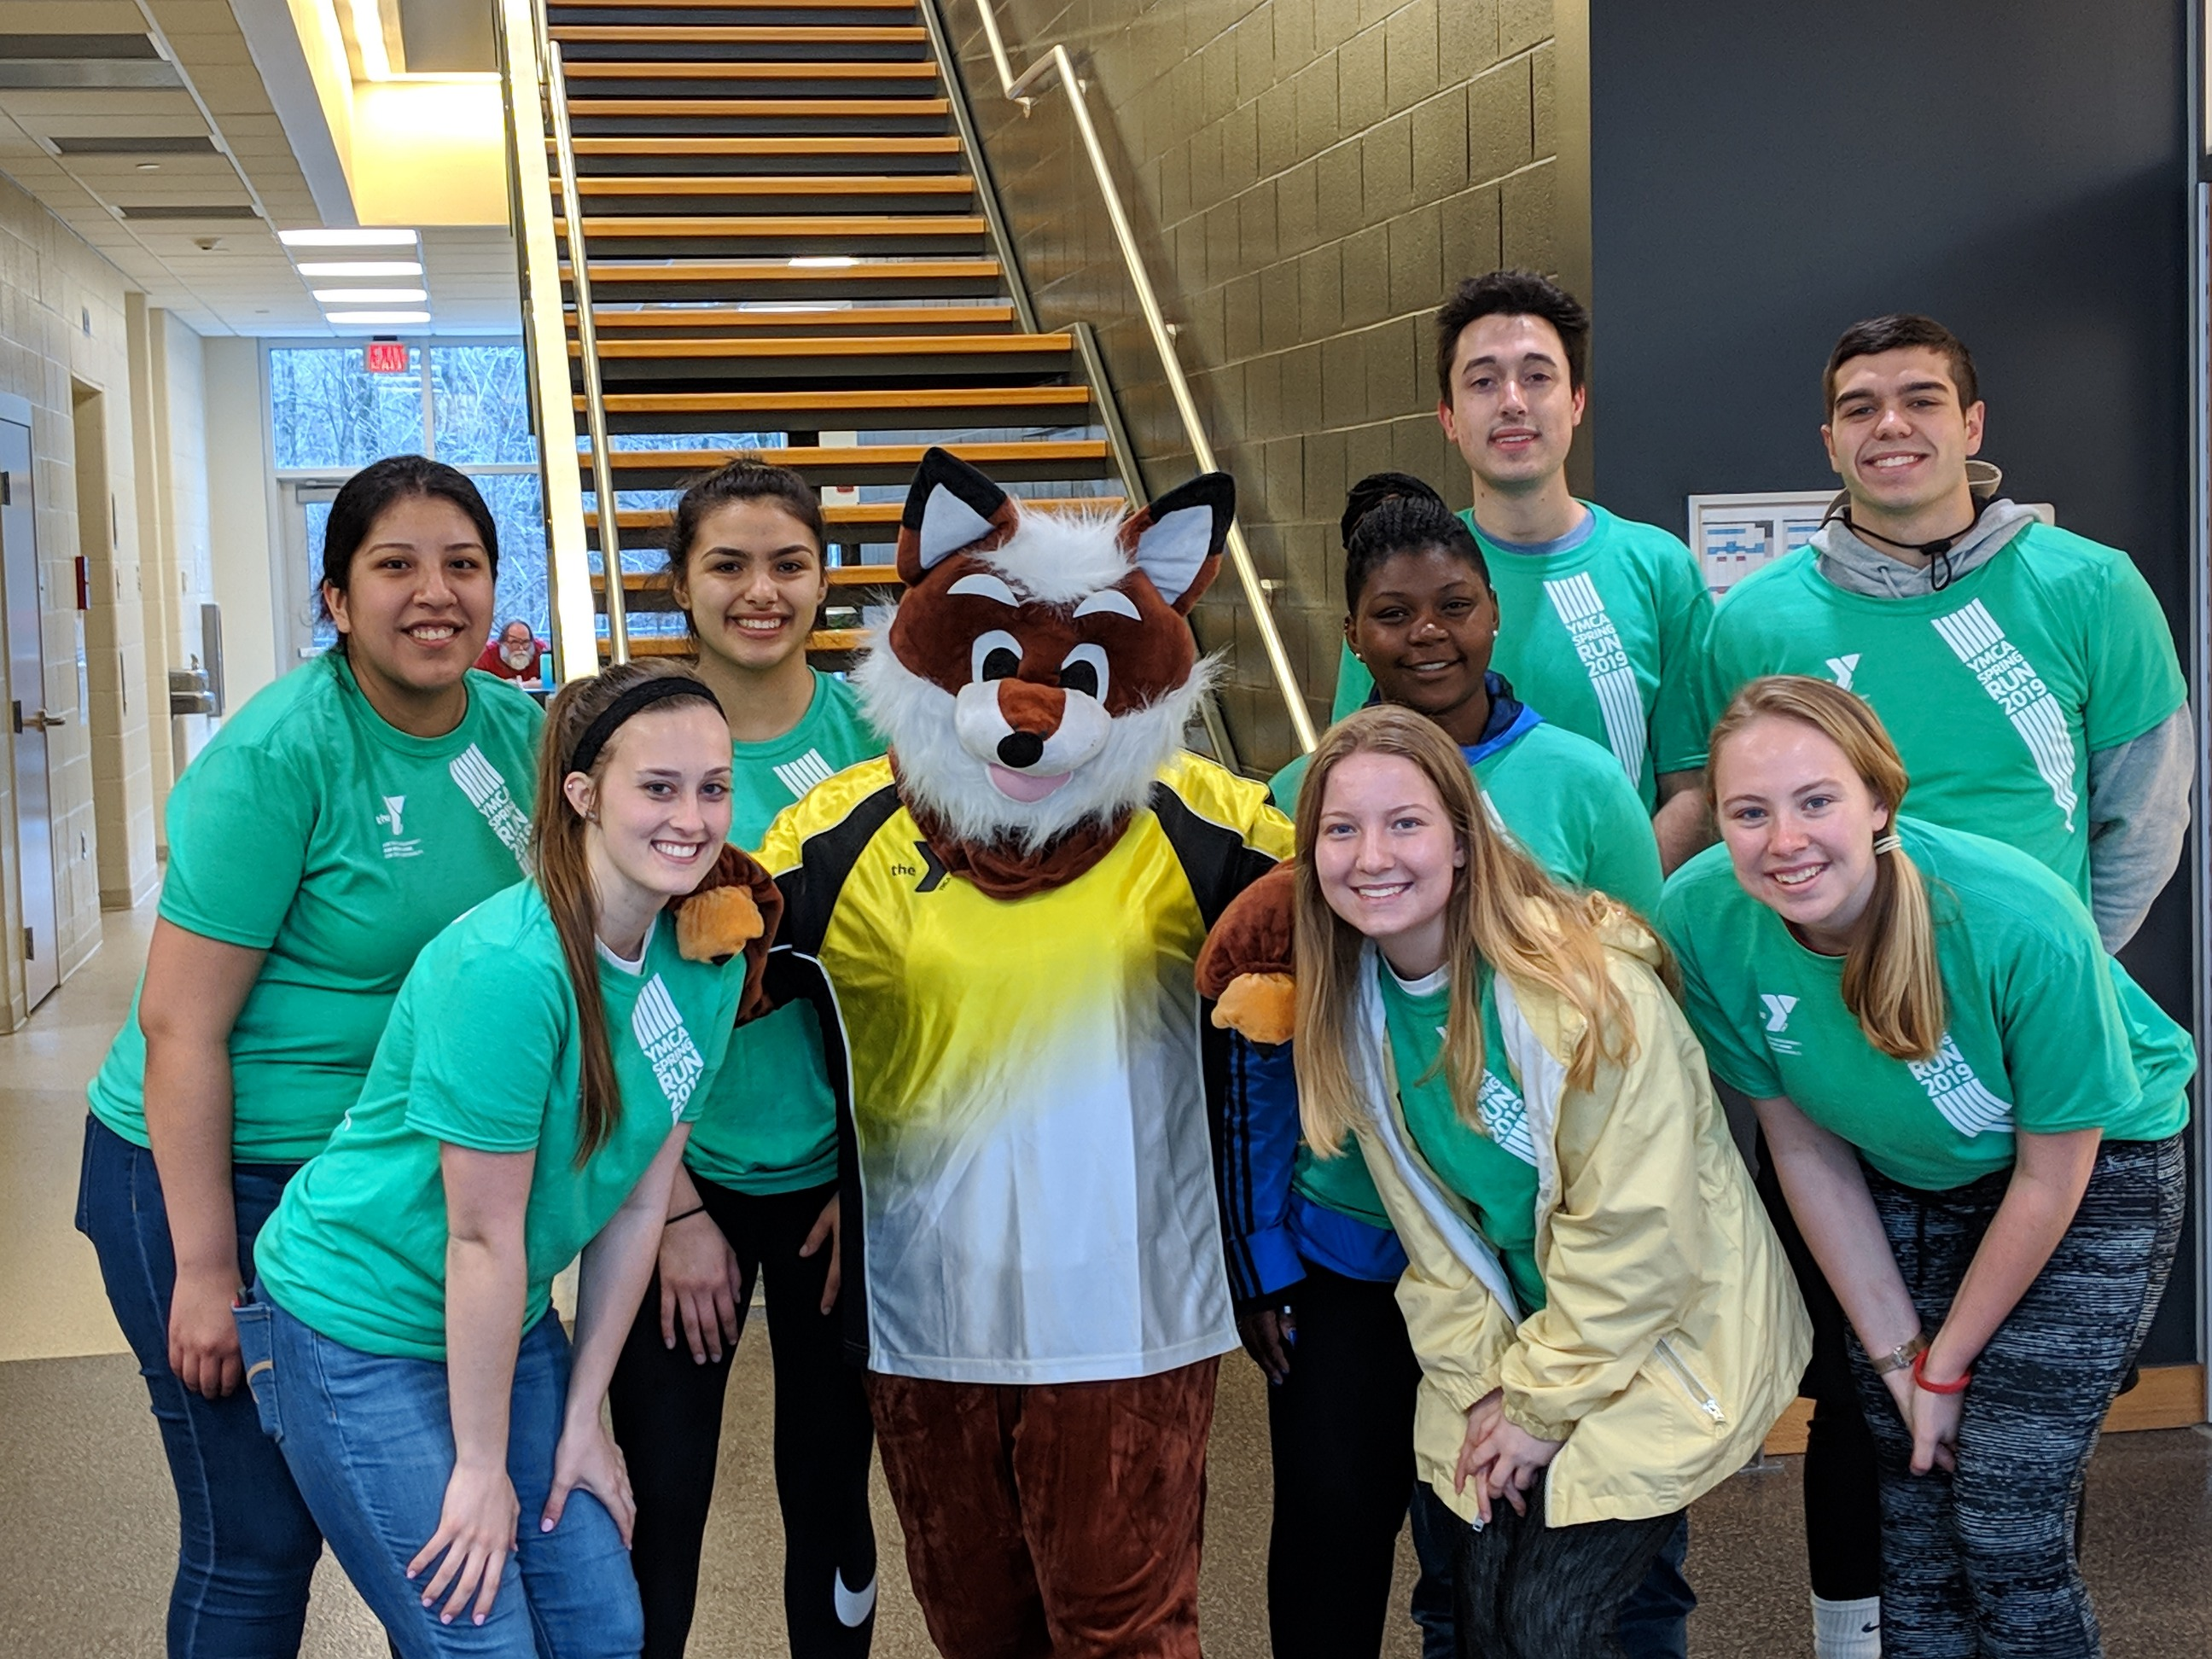 Students from IU Leadership Corps volunteering at the 2019 YMCA Spring Run.